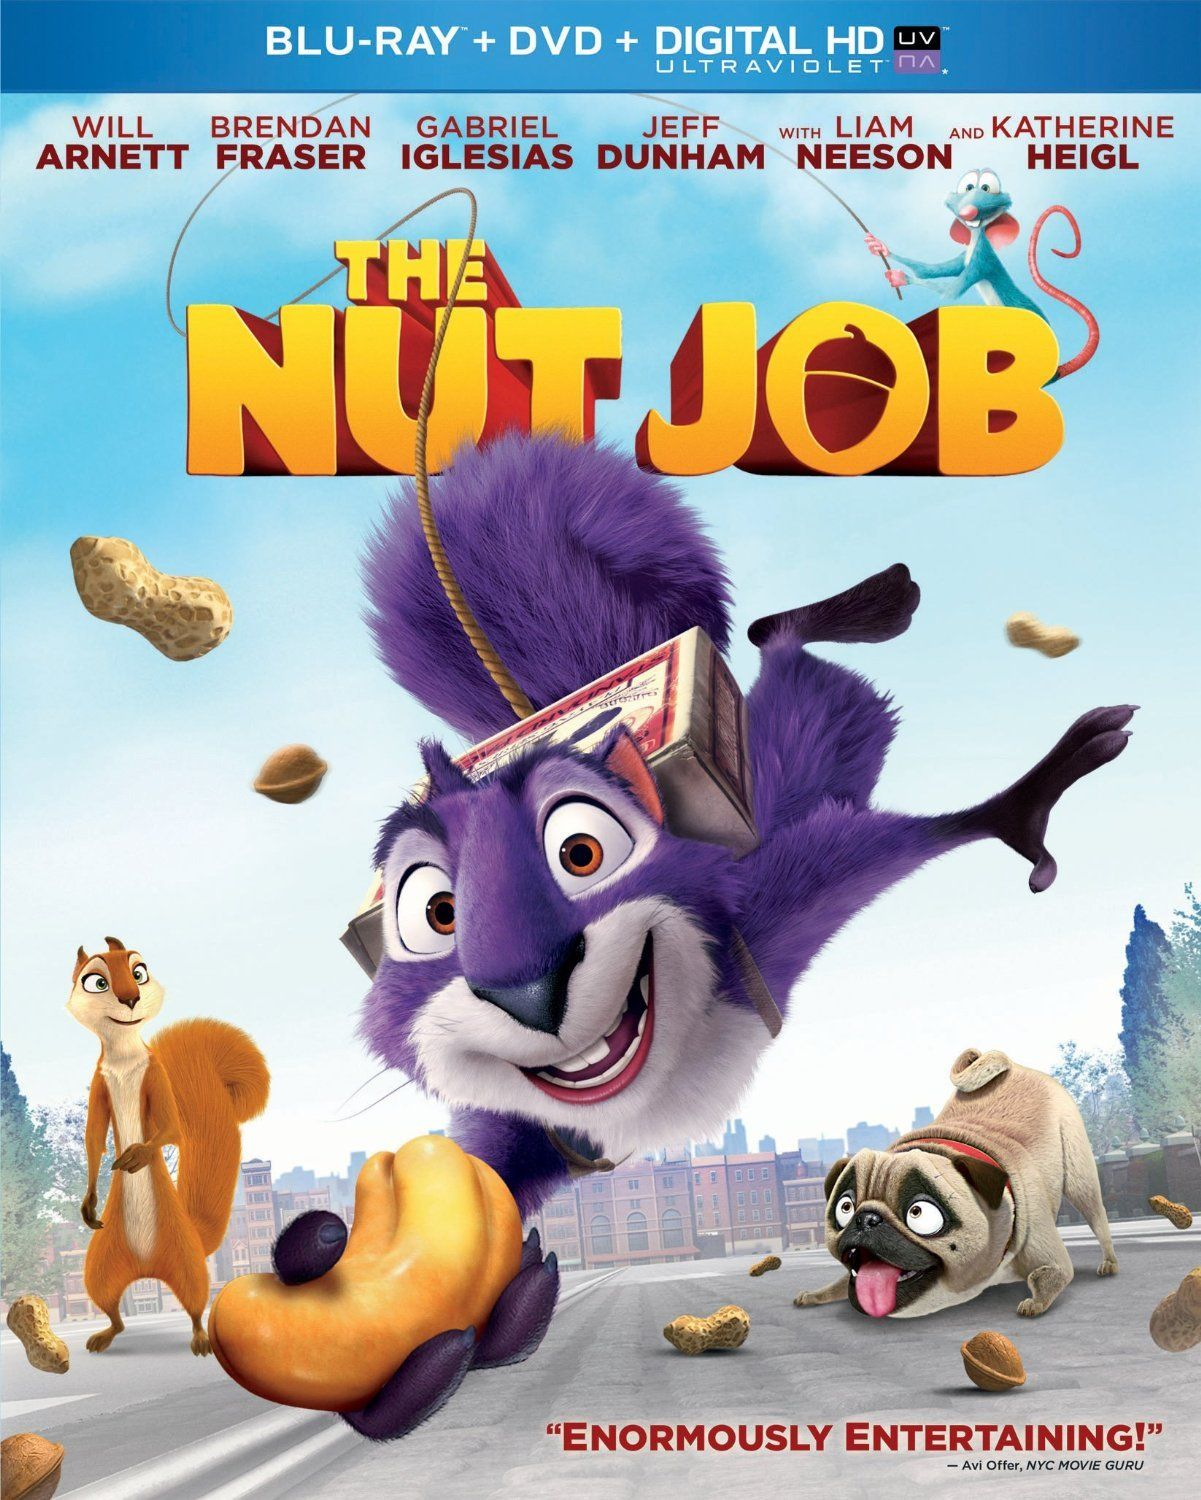 The Nut Job 2014 Hindi Dubbed Brrip The Nut Job Will Arnett Animated Movies